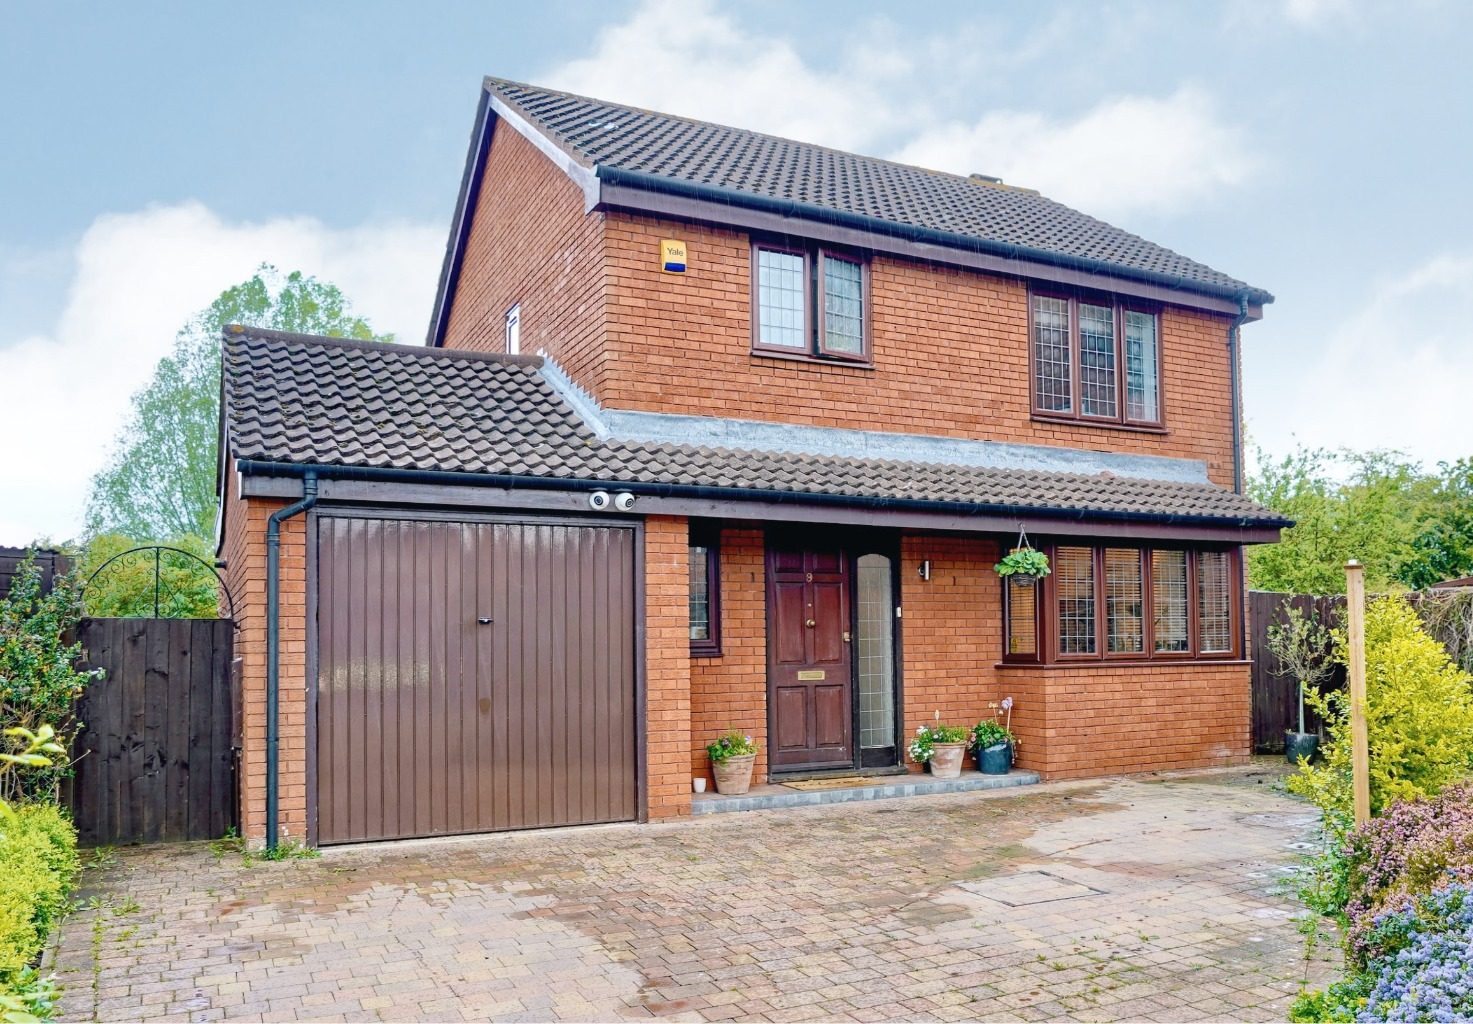 3 bed detached house for sale in Osier Court, St. Neots - Property Image 1